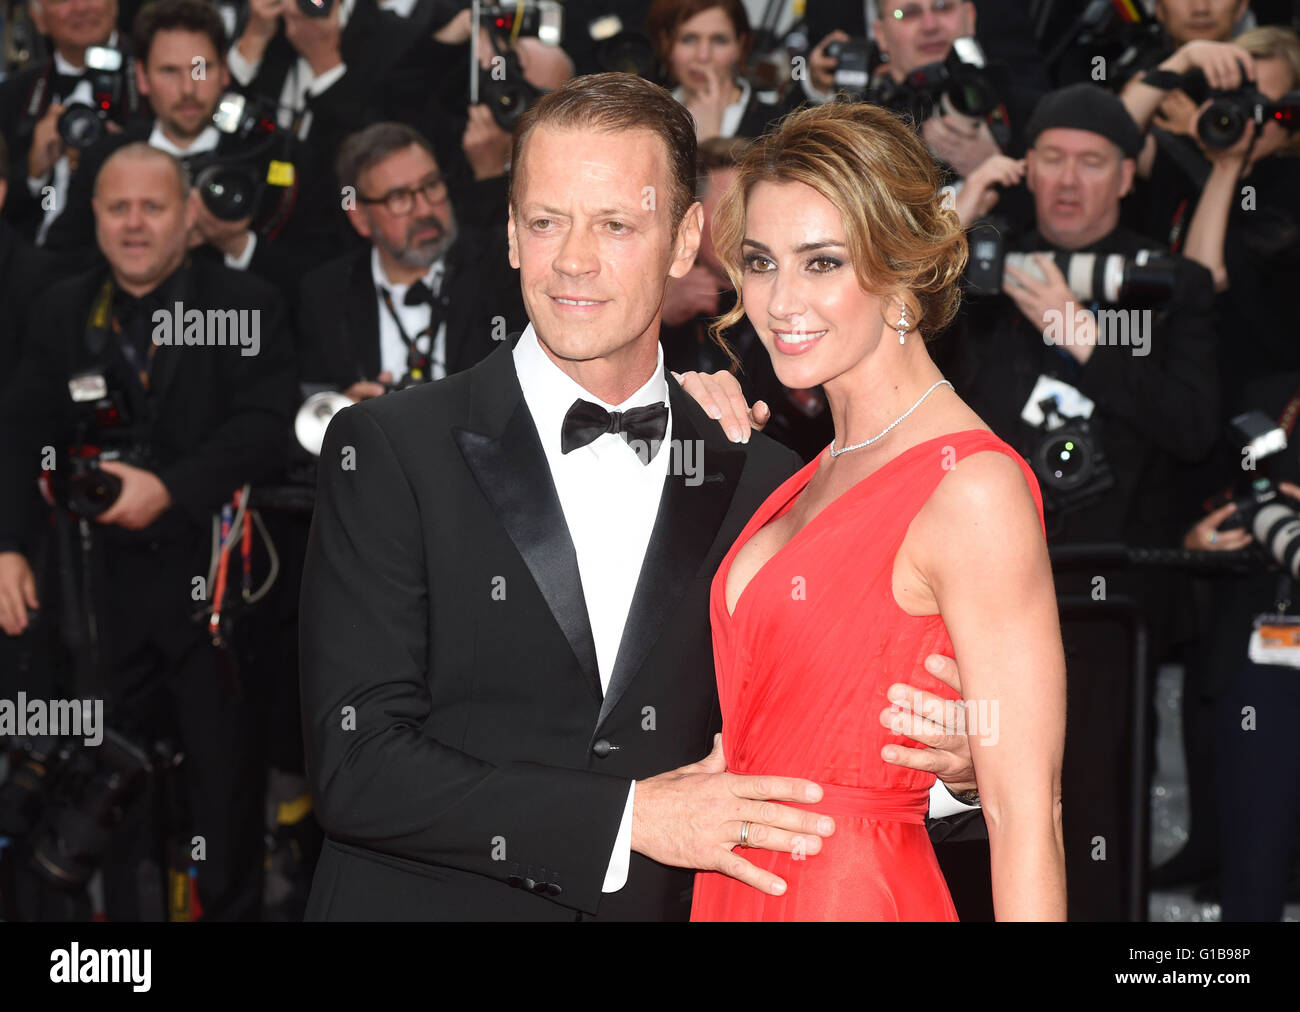 cannes france 12th may 2016 italian actor rocco siffredi and stock photo 104125638 alamy. Black Bedroom Furniture Sets. Home Design Ideas